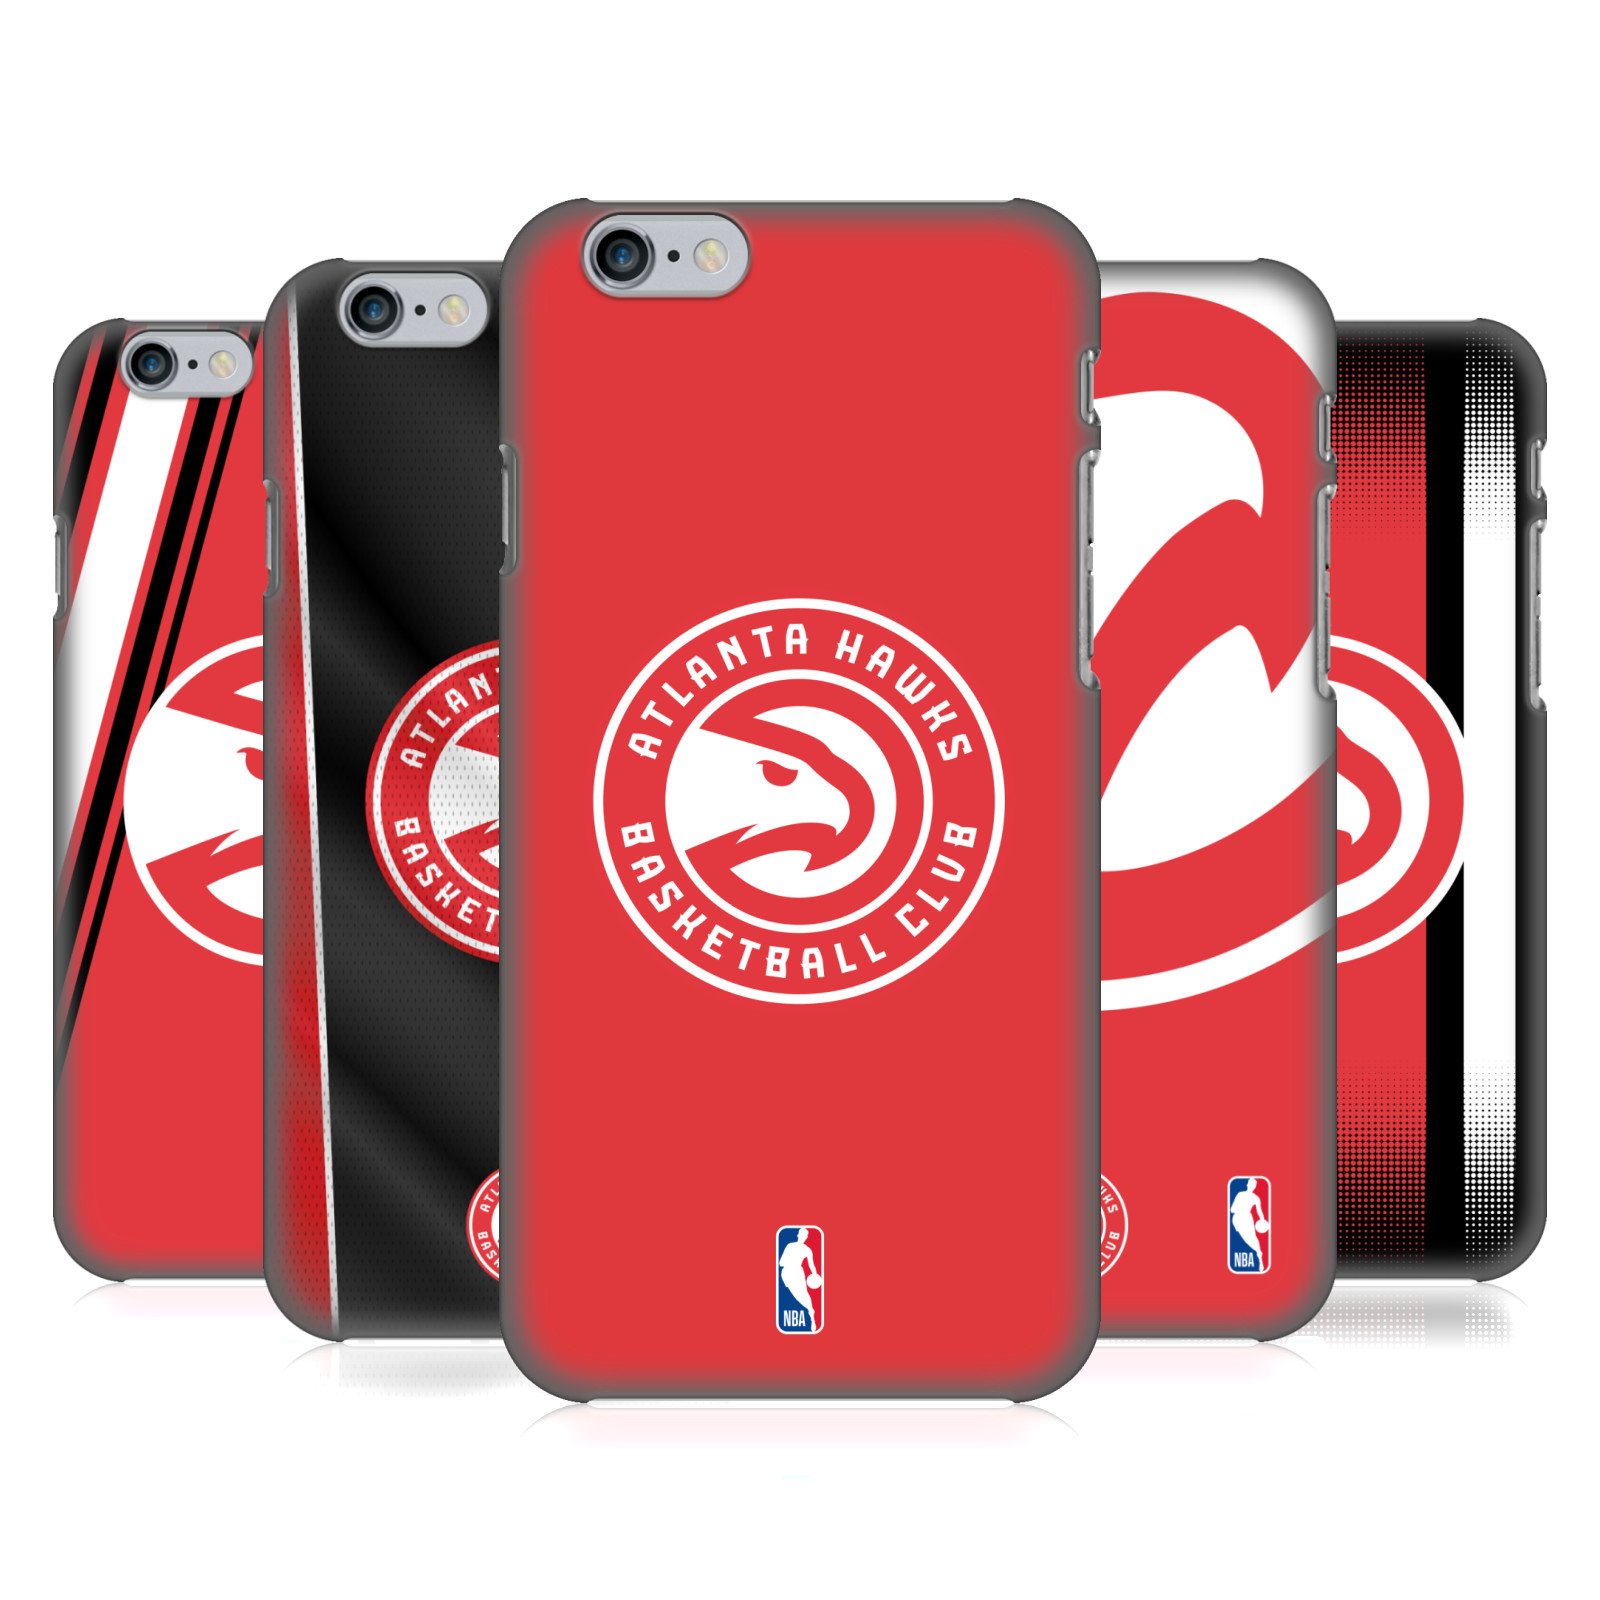 National Basketball Association NBA Atlanta Hawks